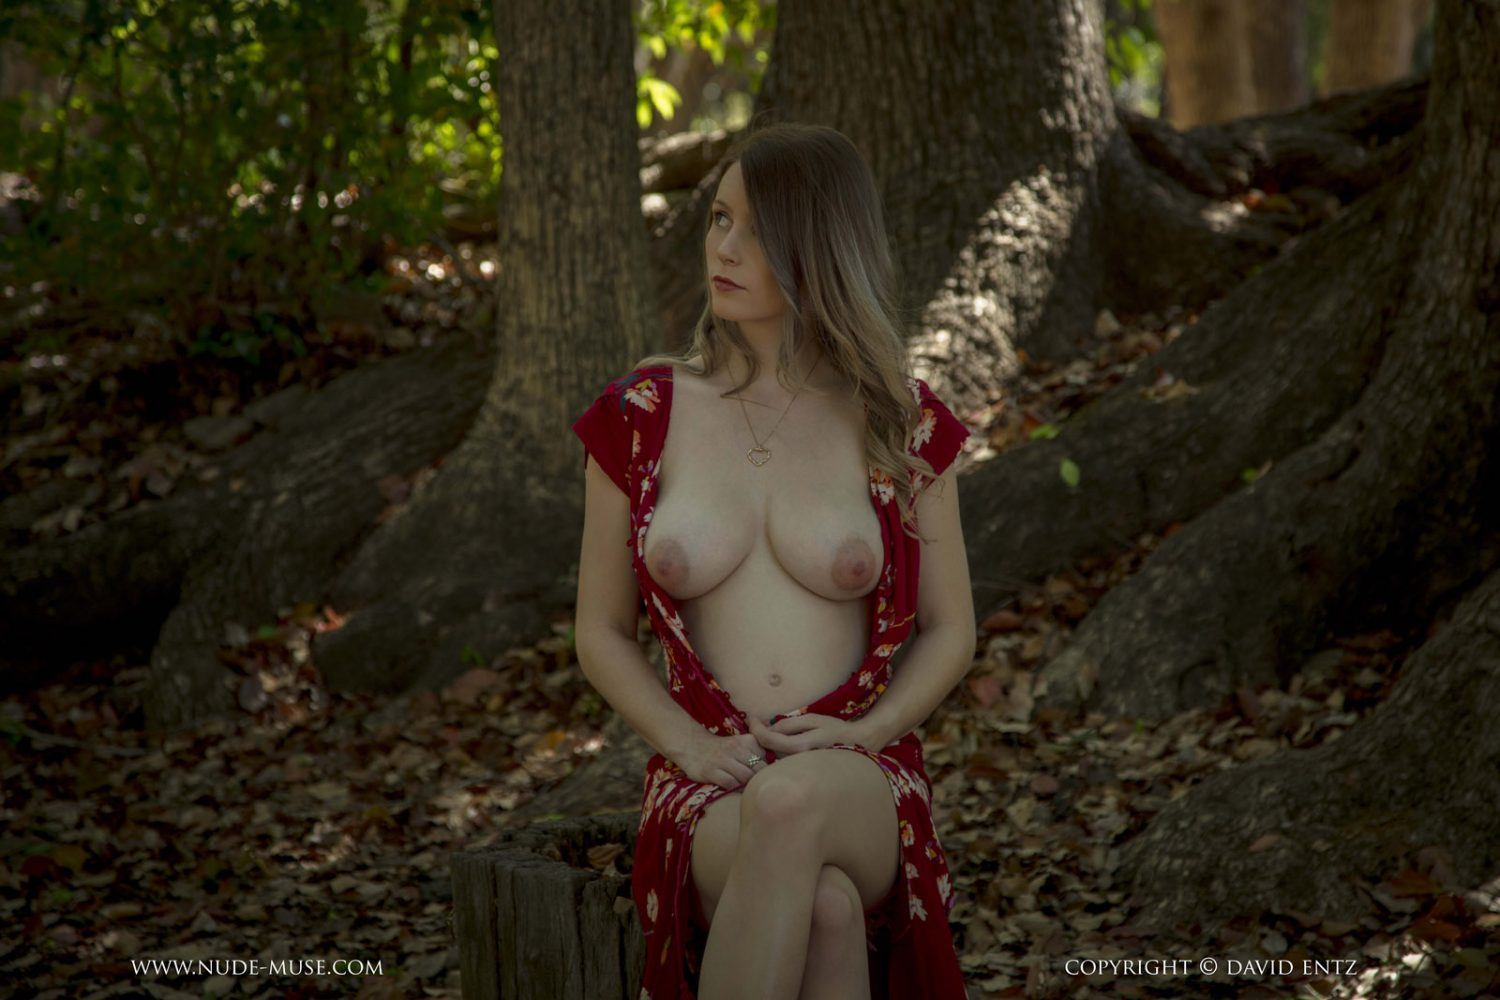 Misty Day Pregnant Nude Muse